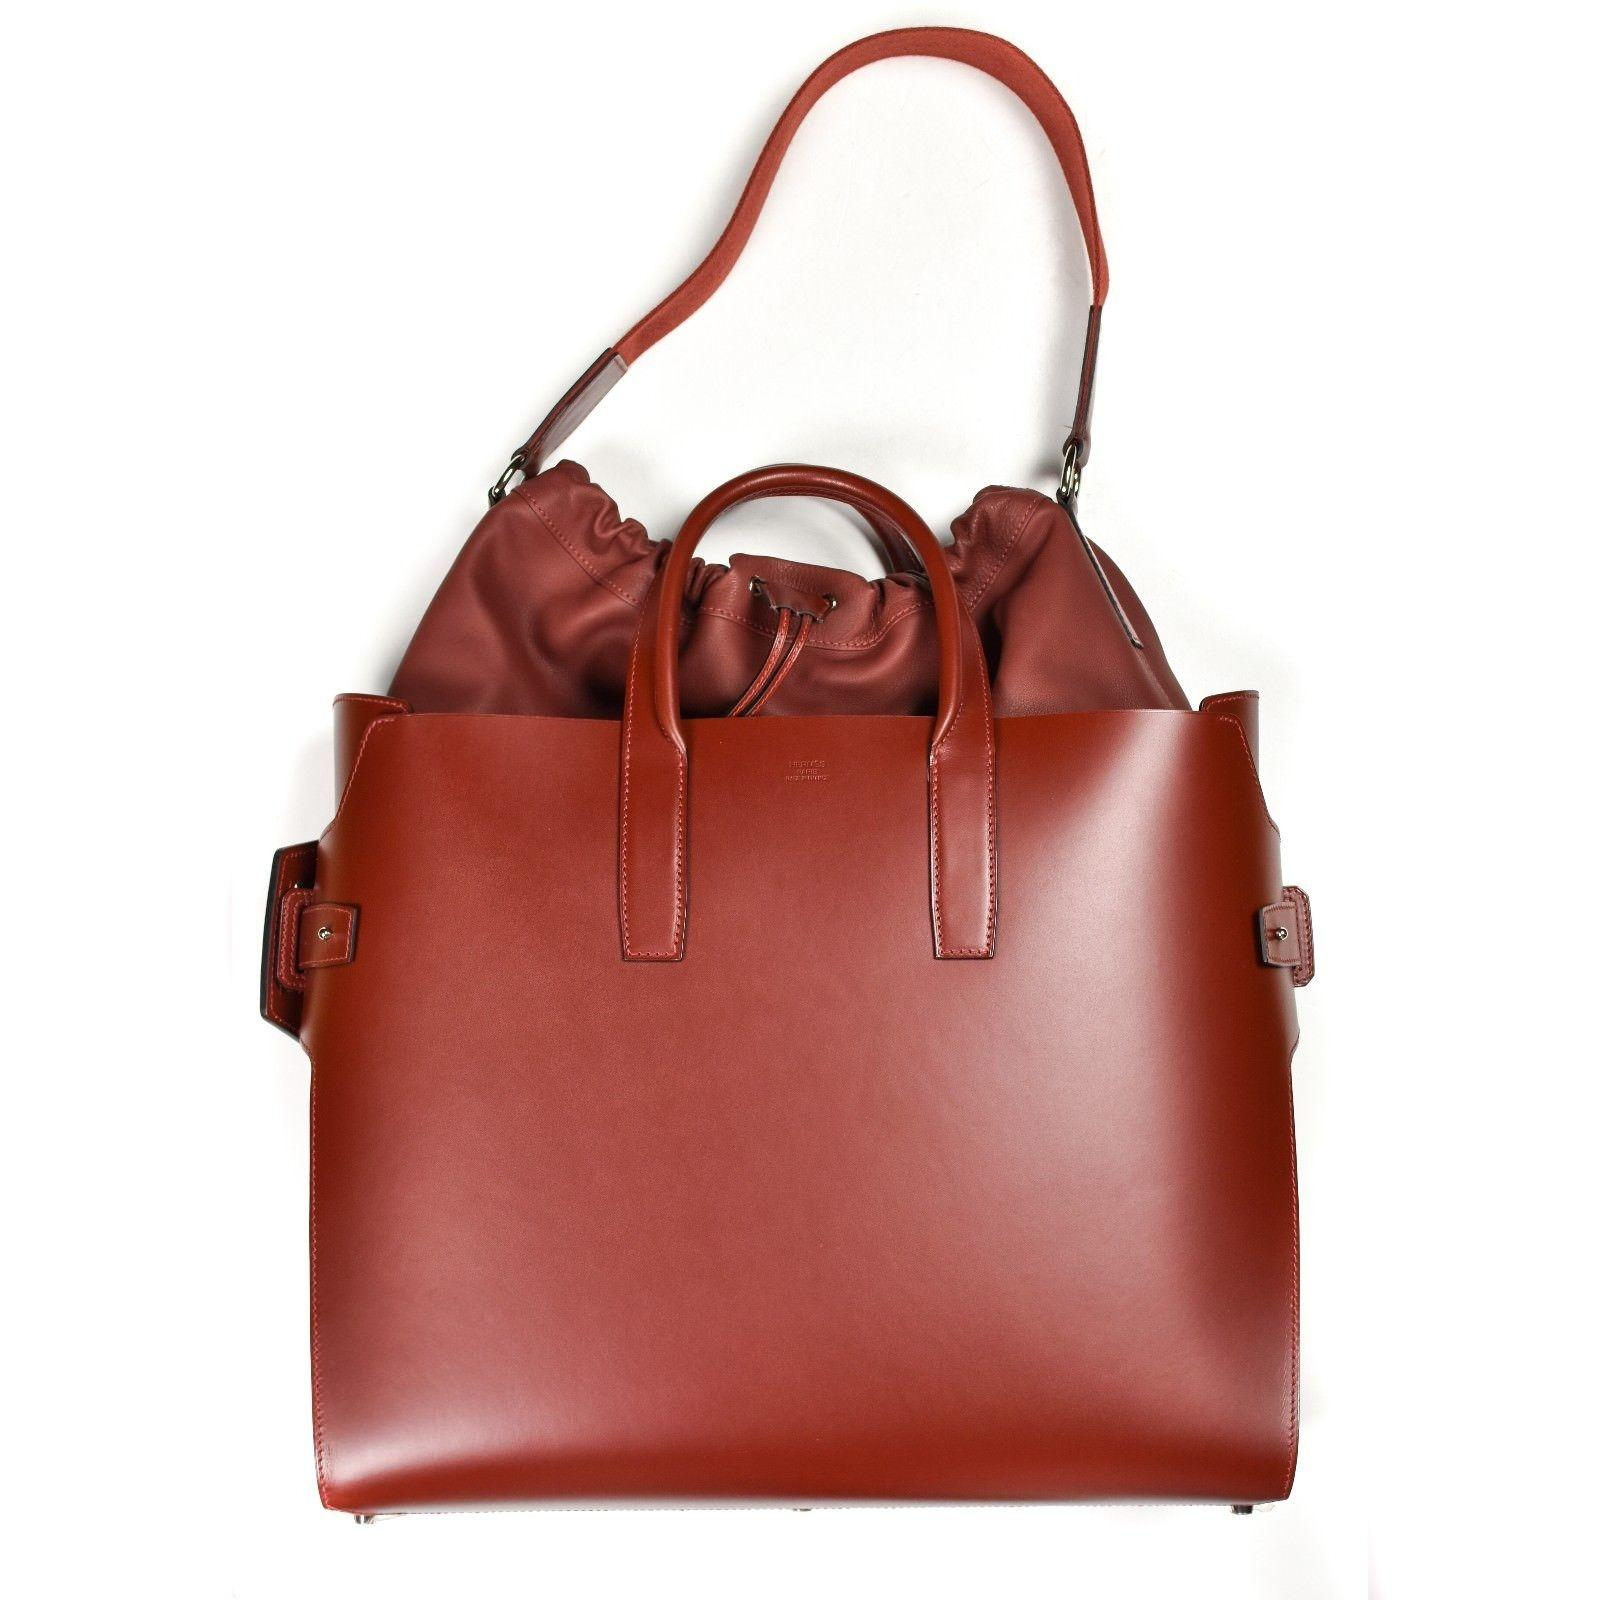 czech hermès bags on sale up to 70 off at tradesy e2343 eae64 9600863f84